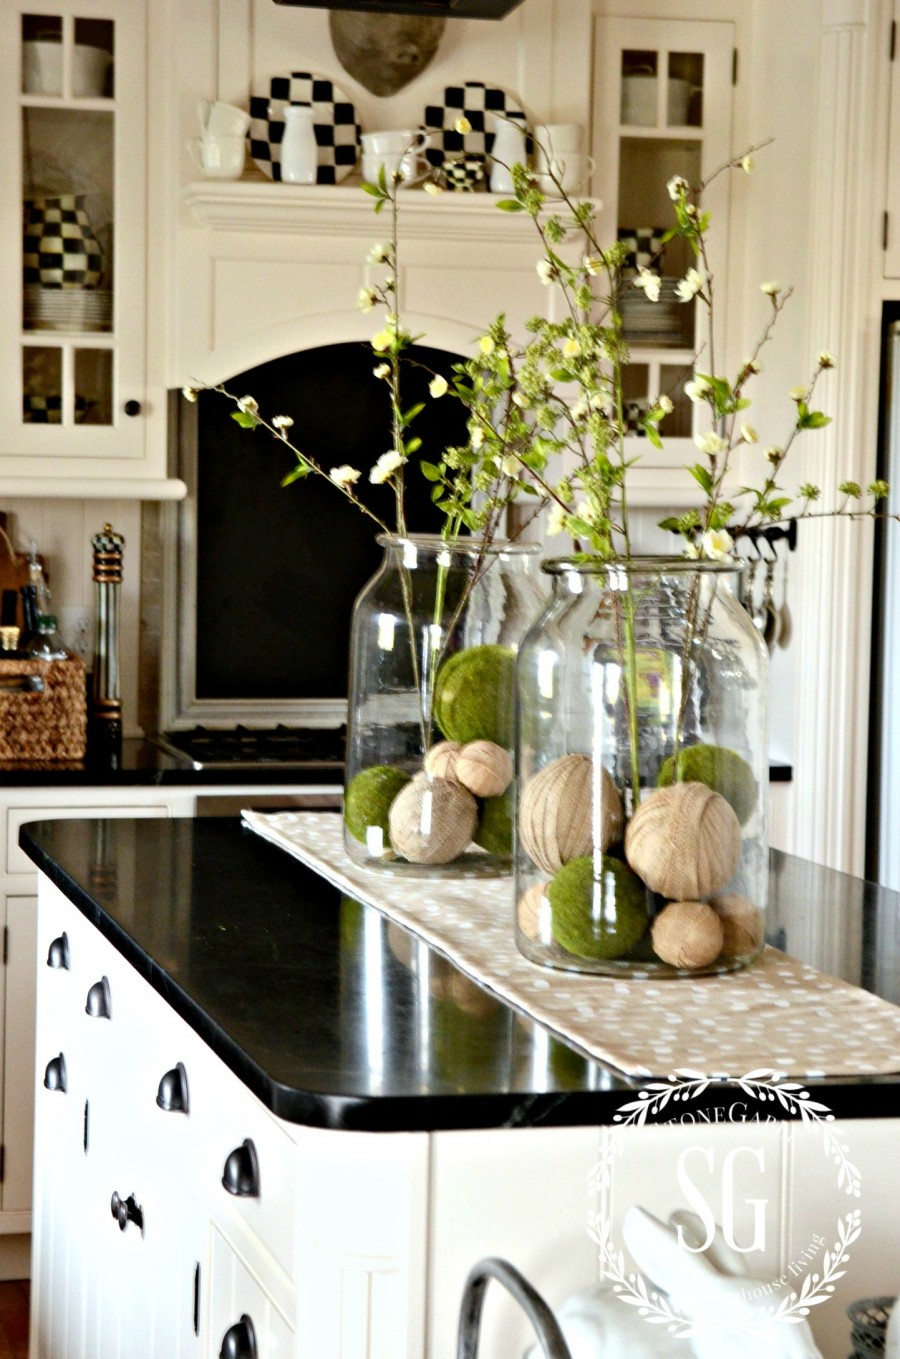 5 QUESTIONS YOU ASKED STONEGABLE-soapstone counters-stonegableblog.com